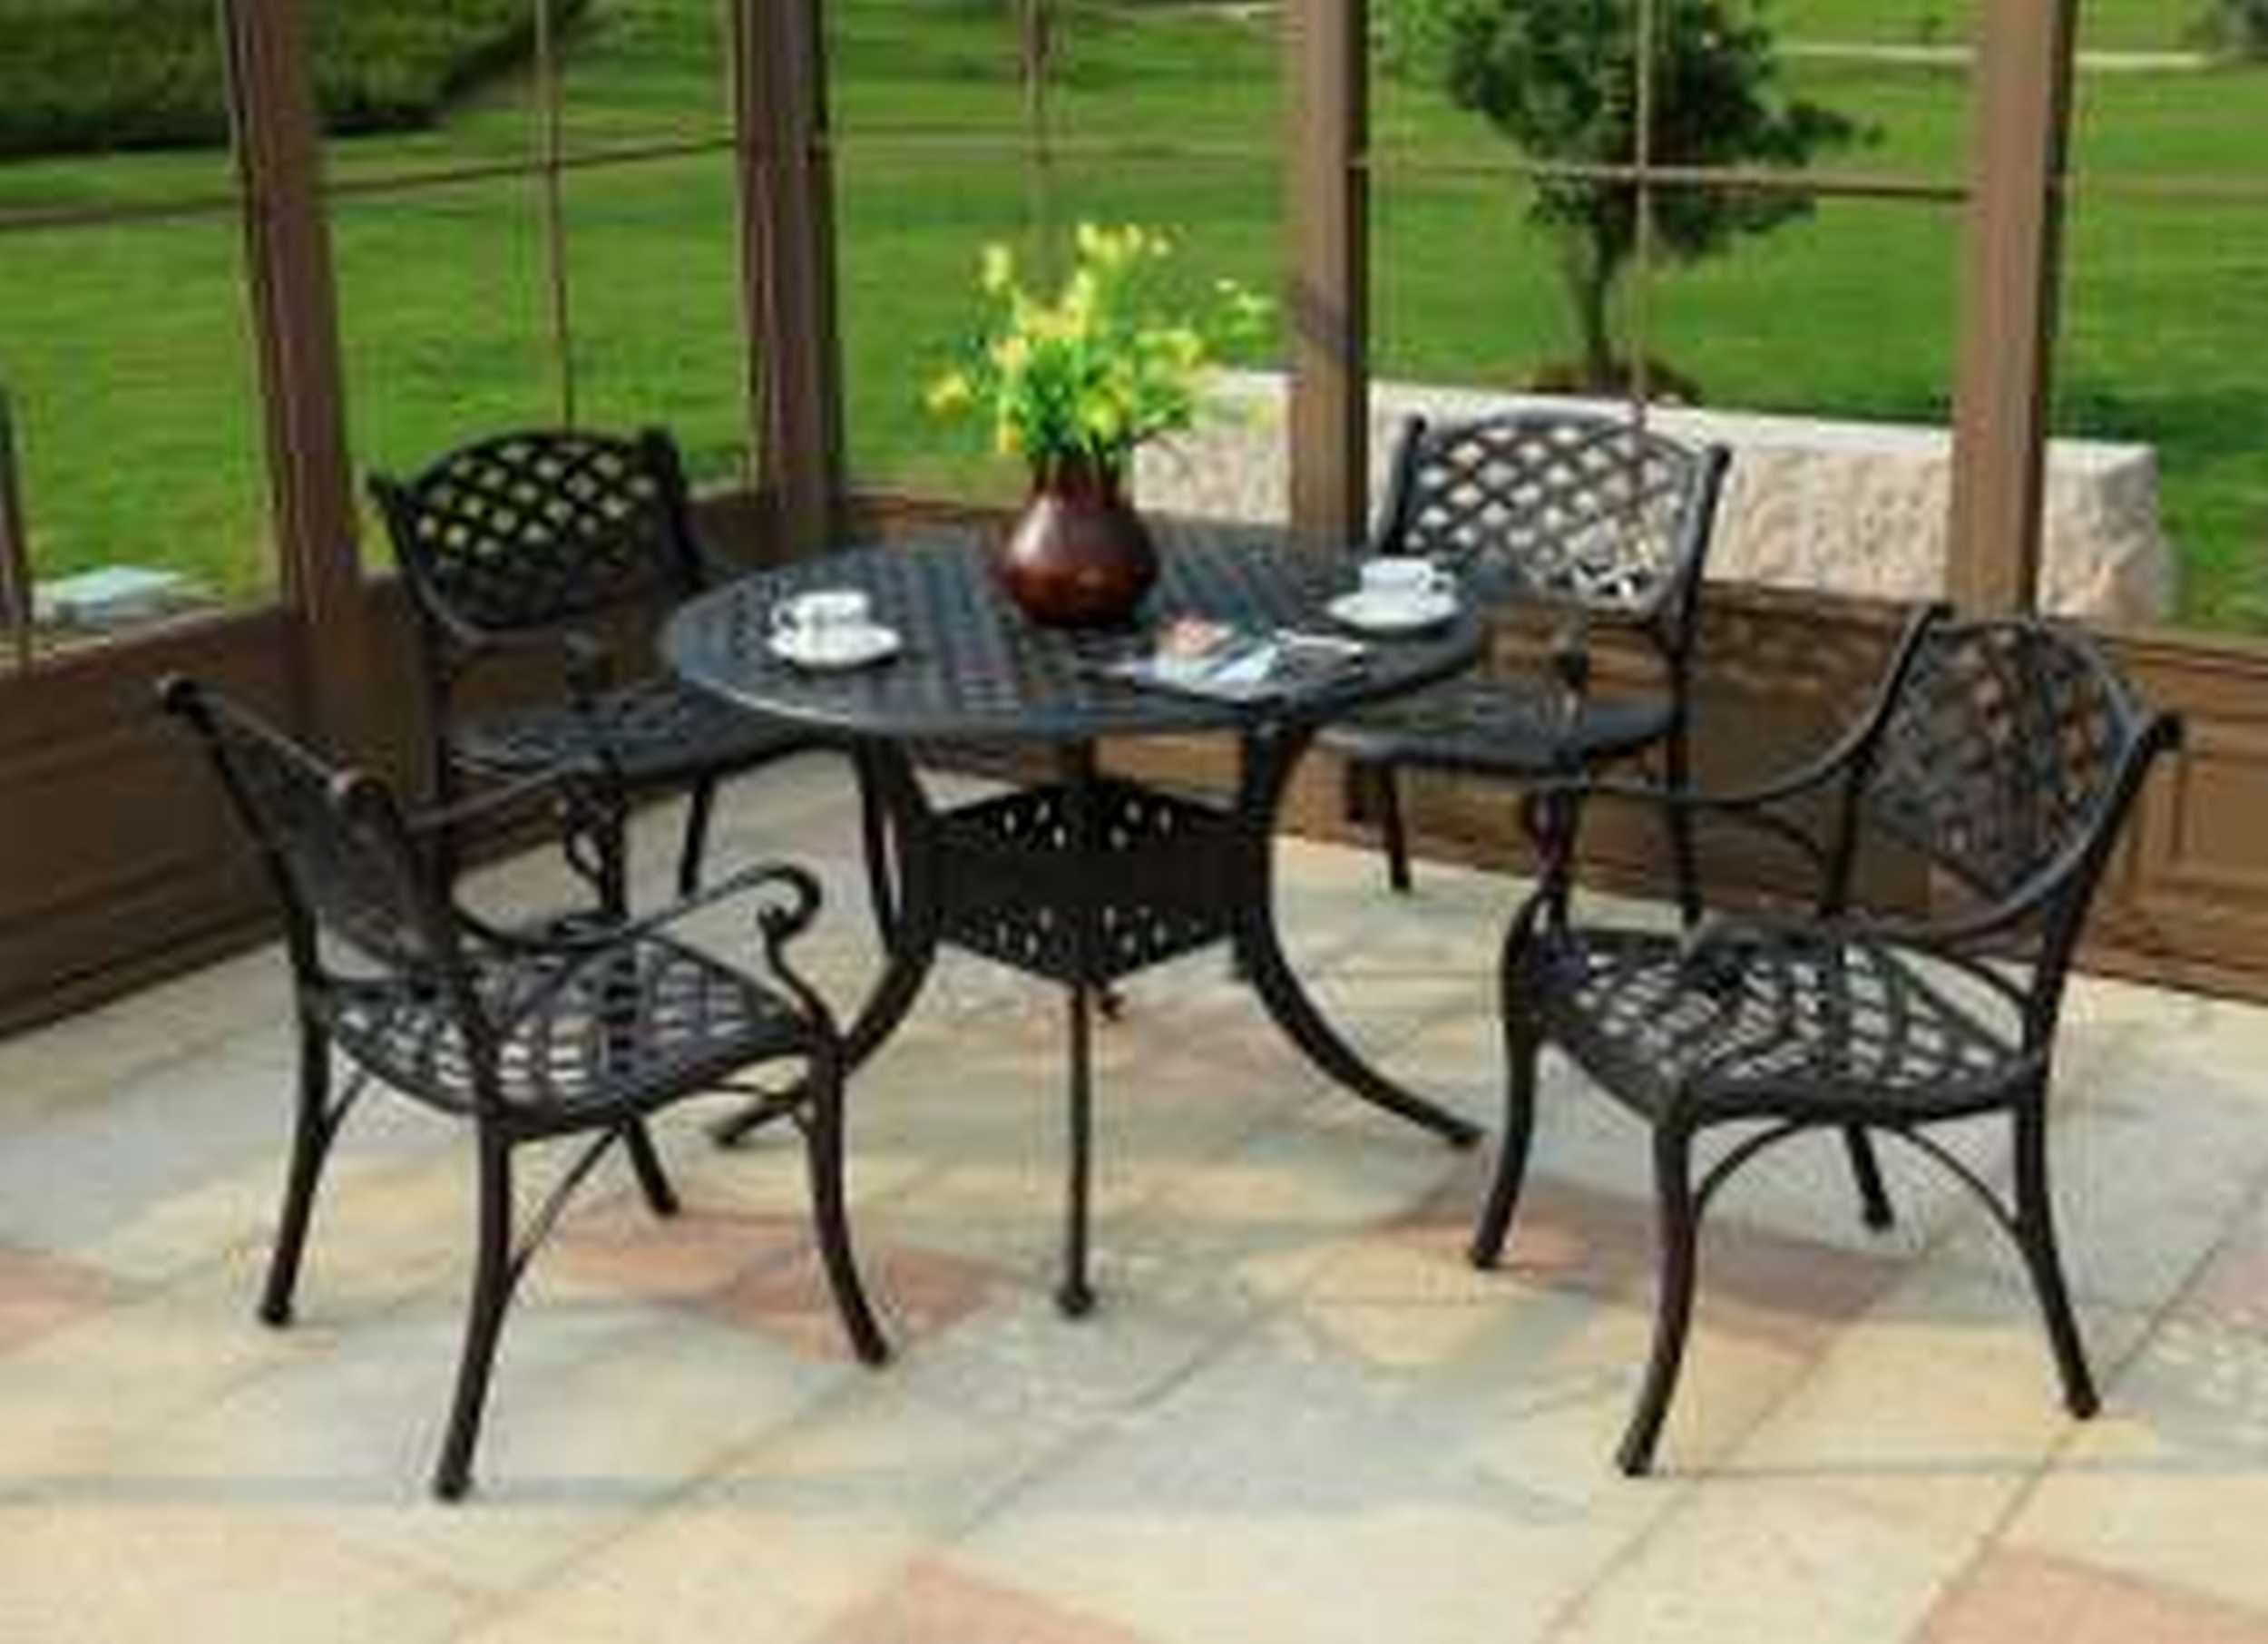 patio table outside table and chairs bm patio table and chairs rh pinterest com